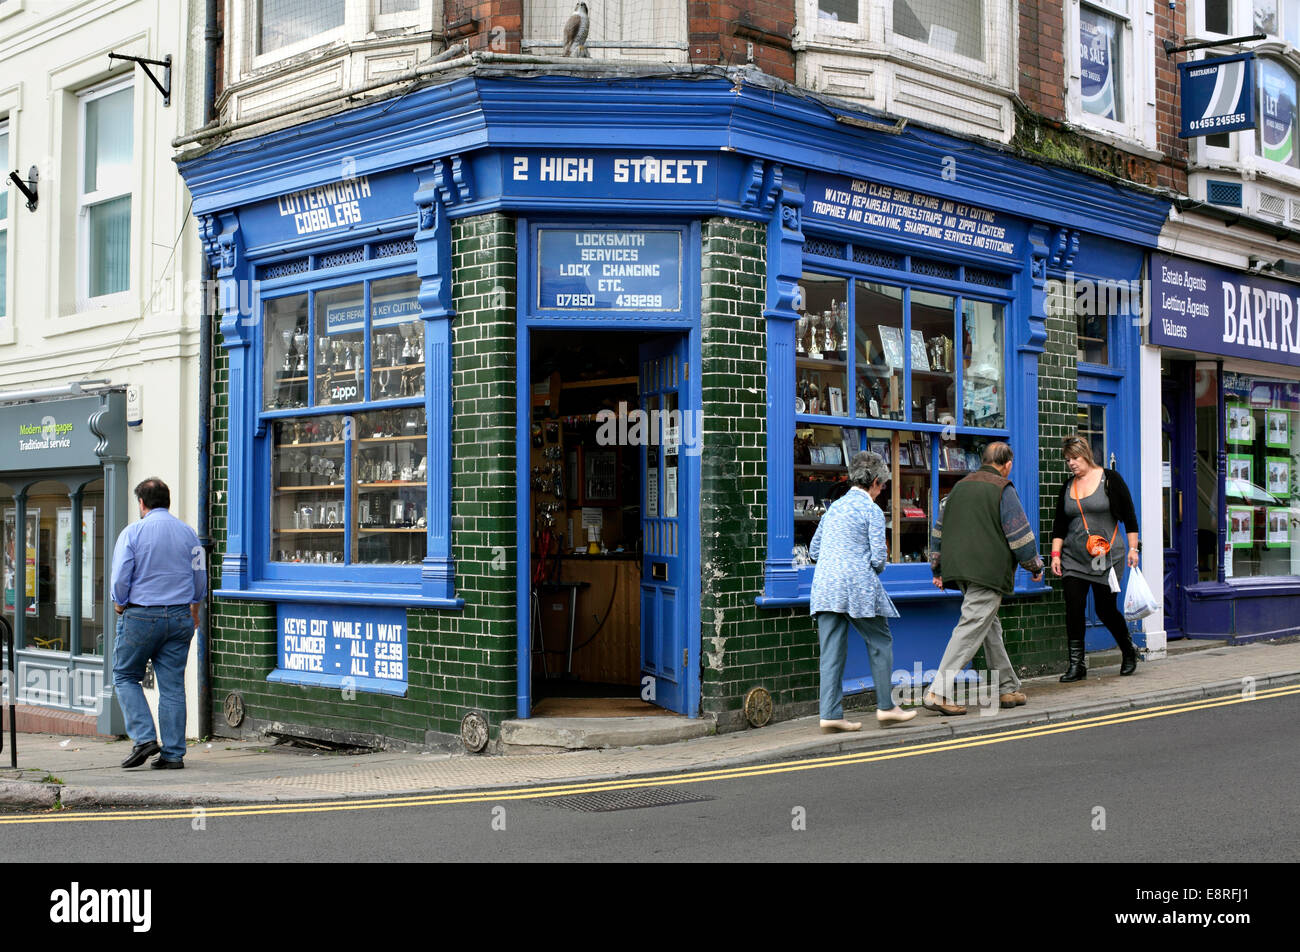 Traditional locksmith and cobblers shop, High Street, Lutterworth, Leicestershire. - Stock Image